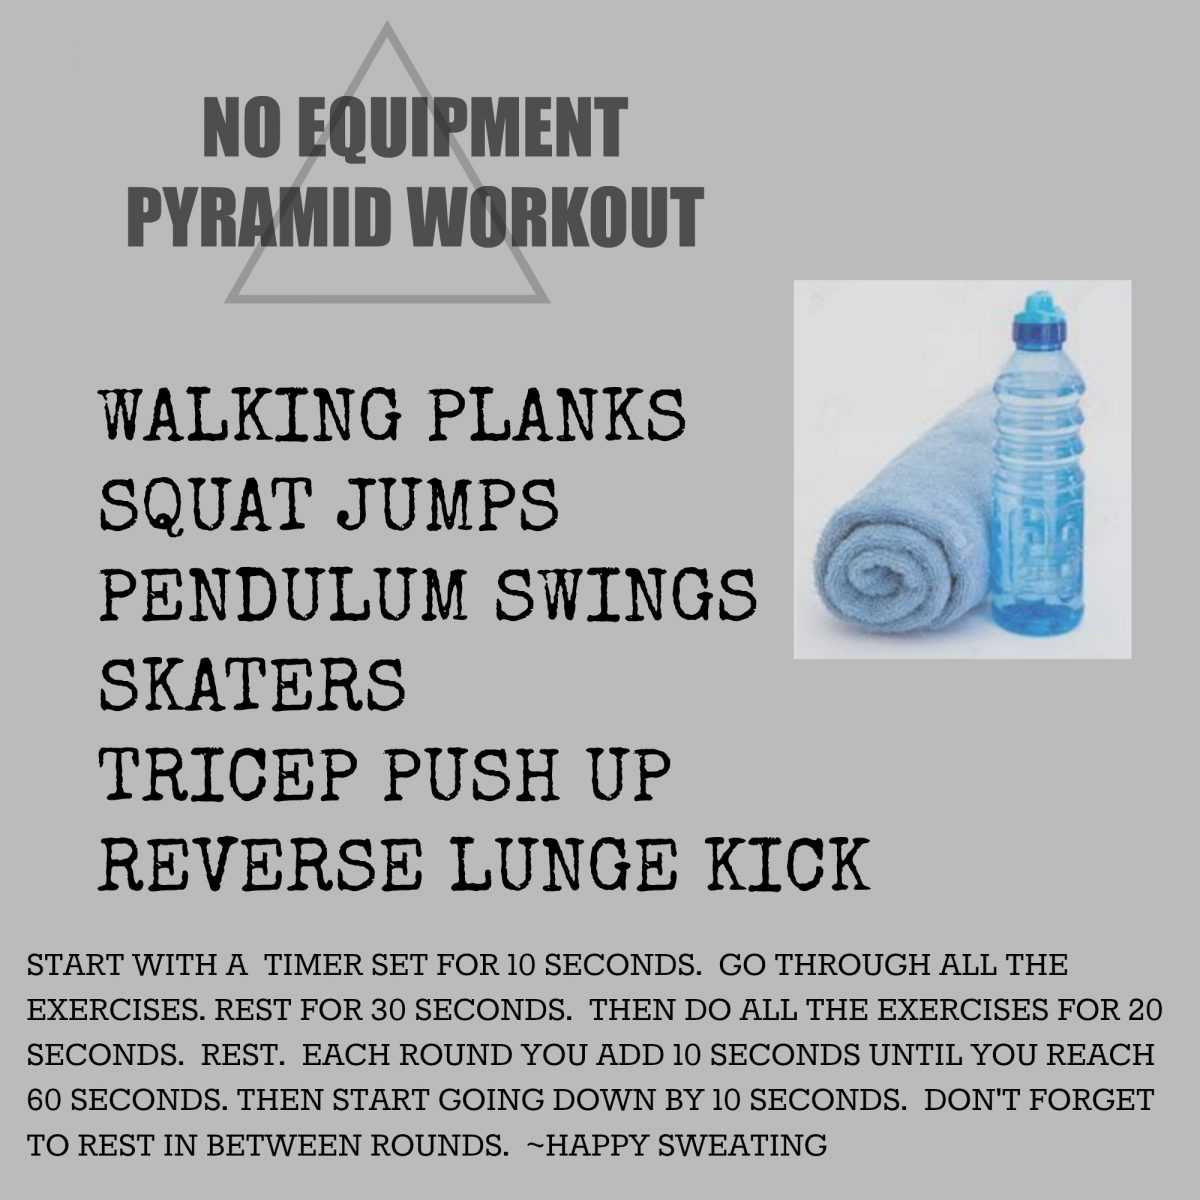 40 MINUTE PYRAMID WORKOUT